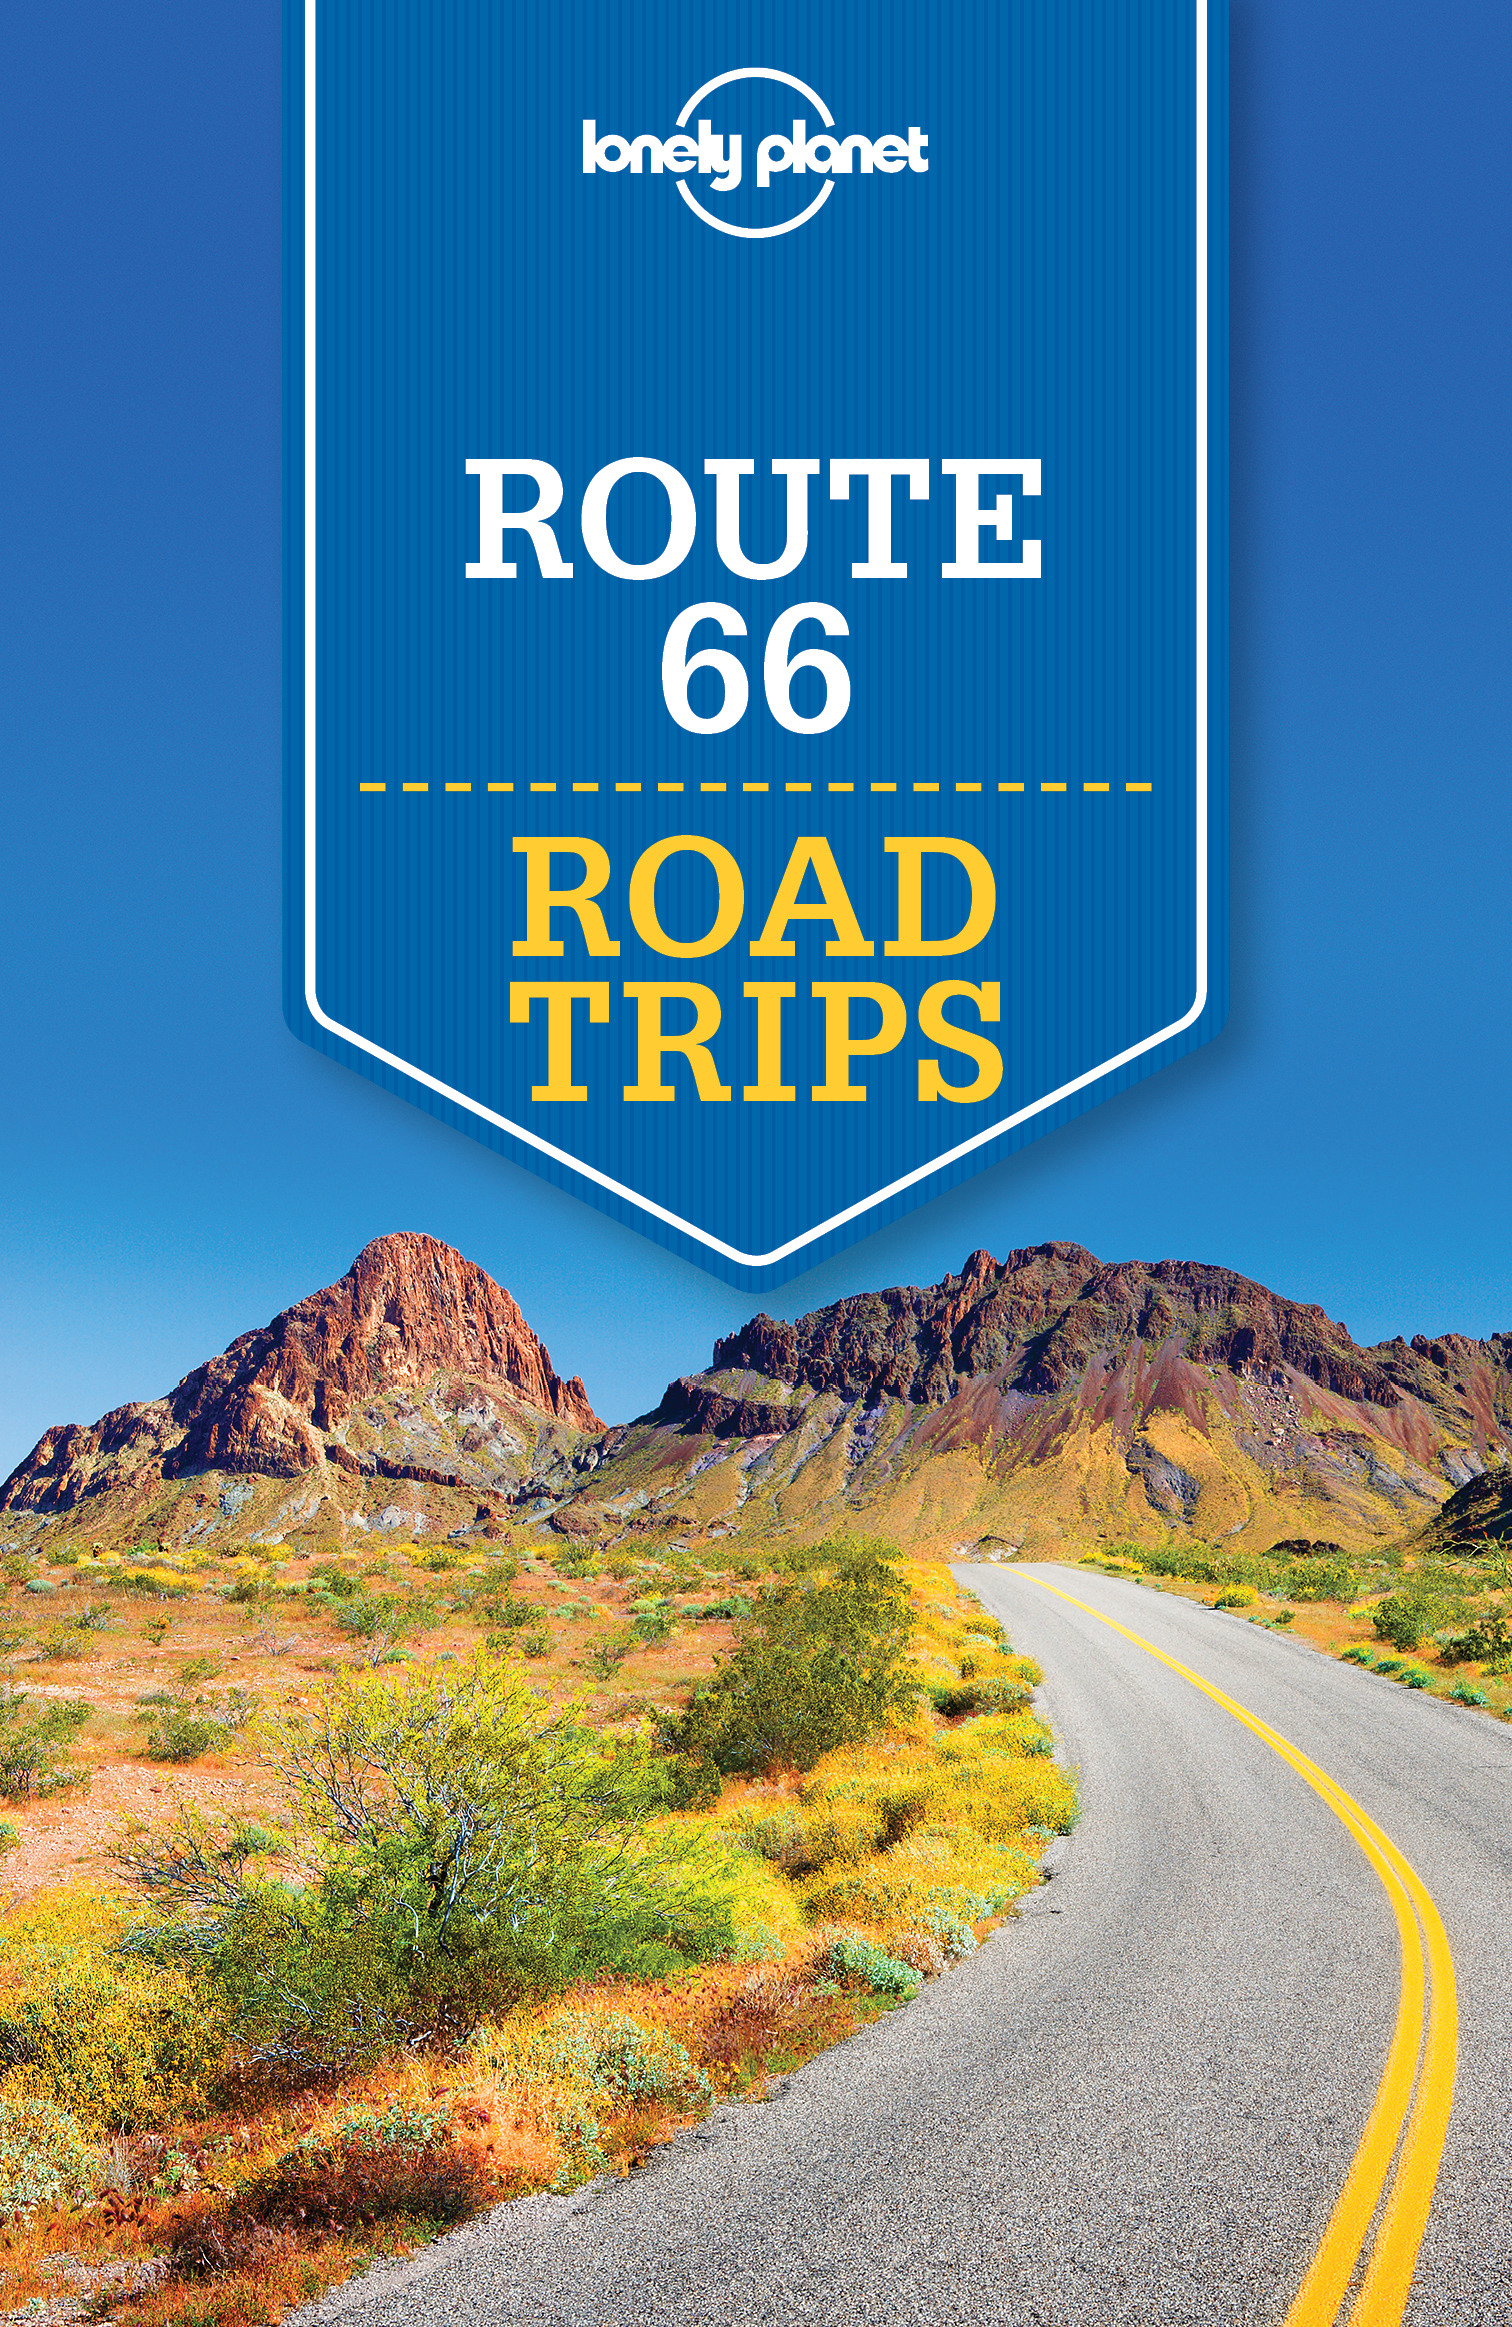 Bender, Andrew - Lonely Planet Route 66 Road Trips, ebook